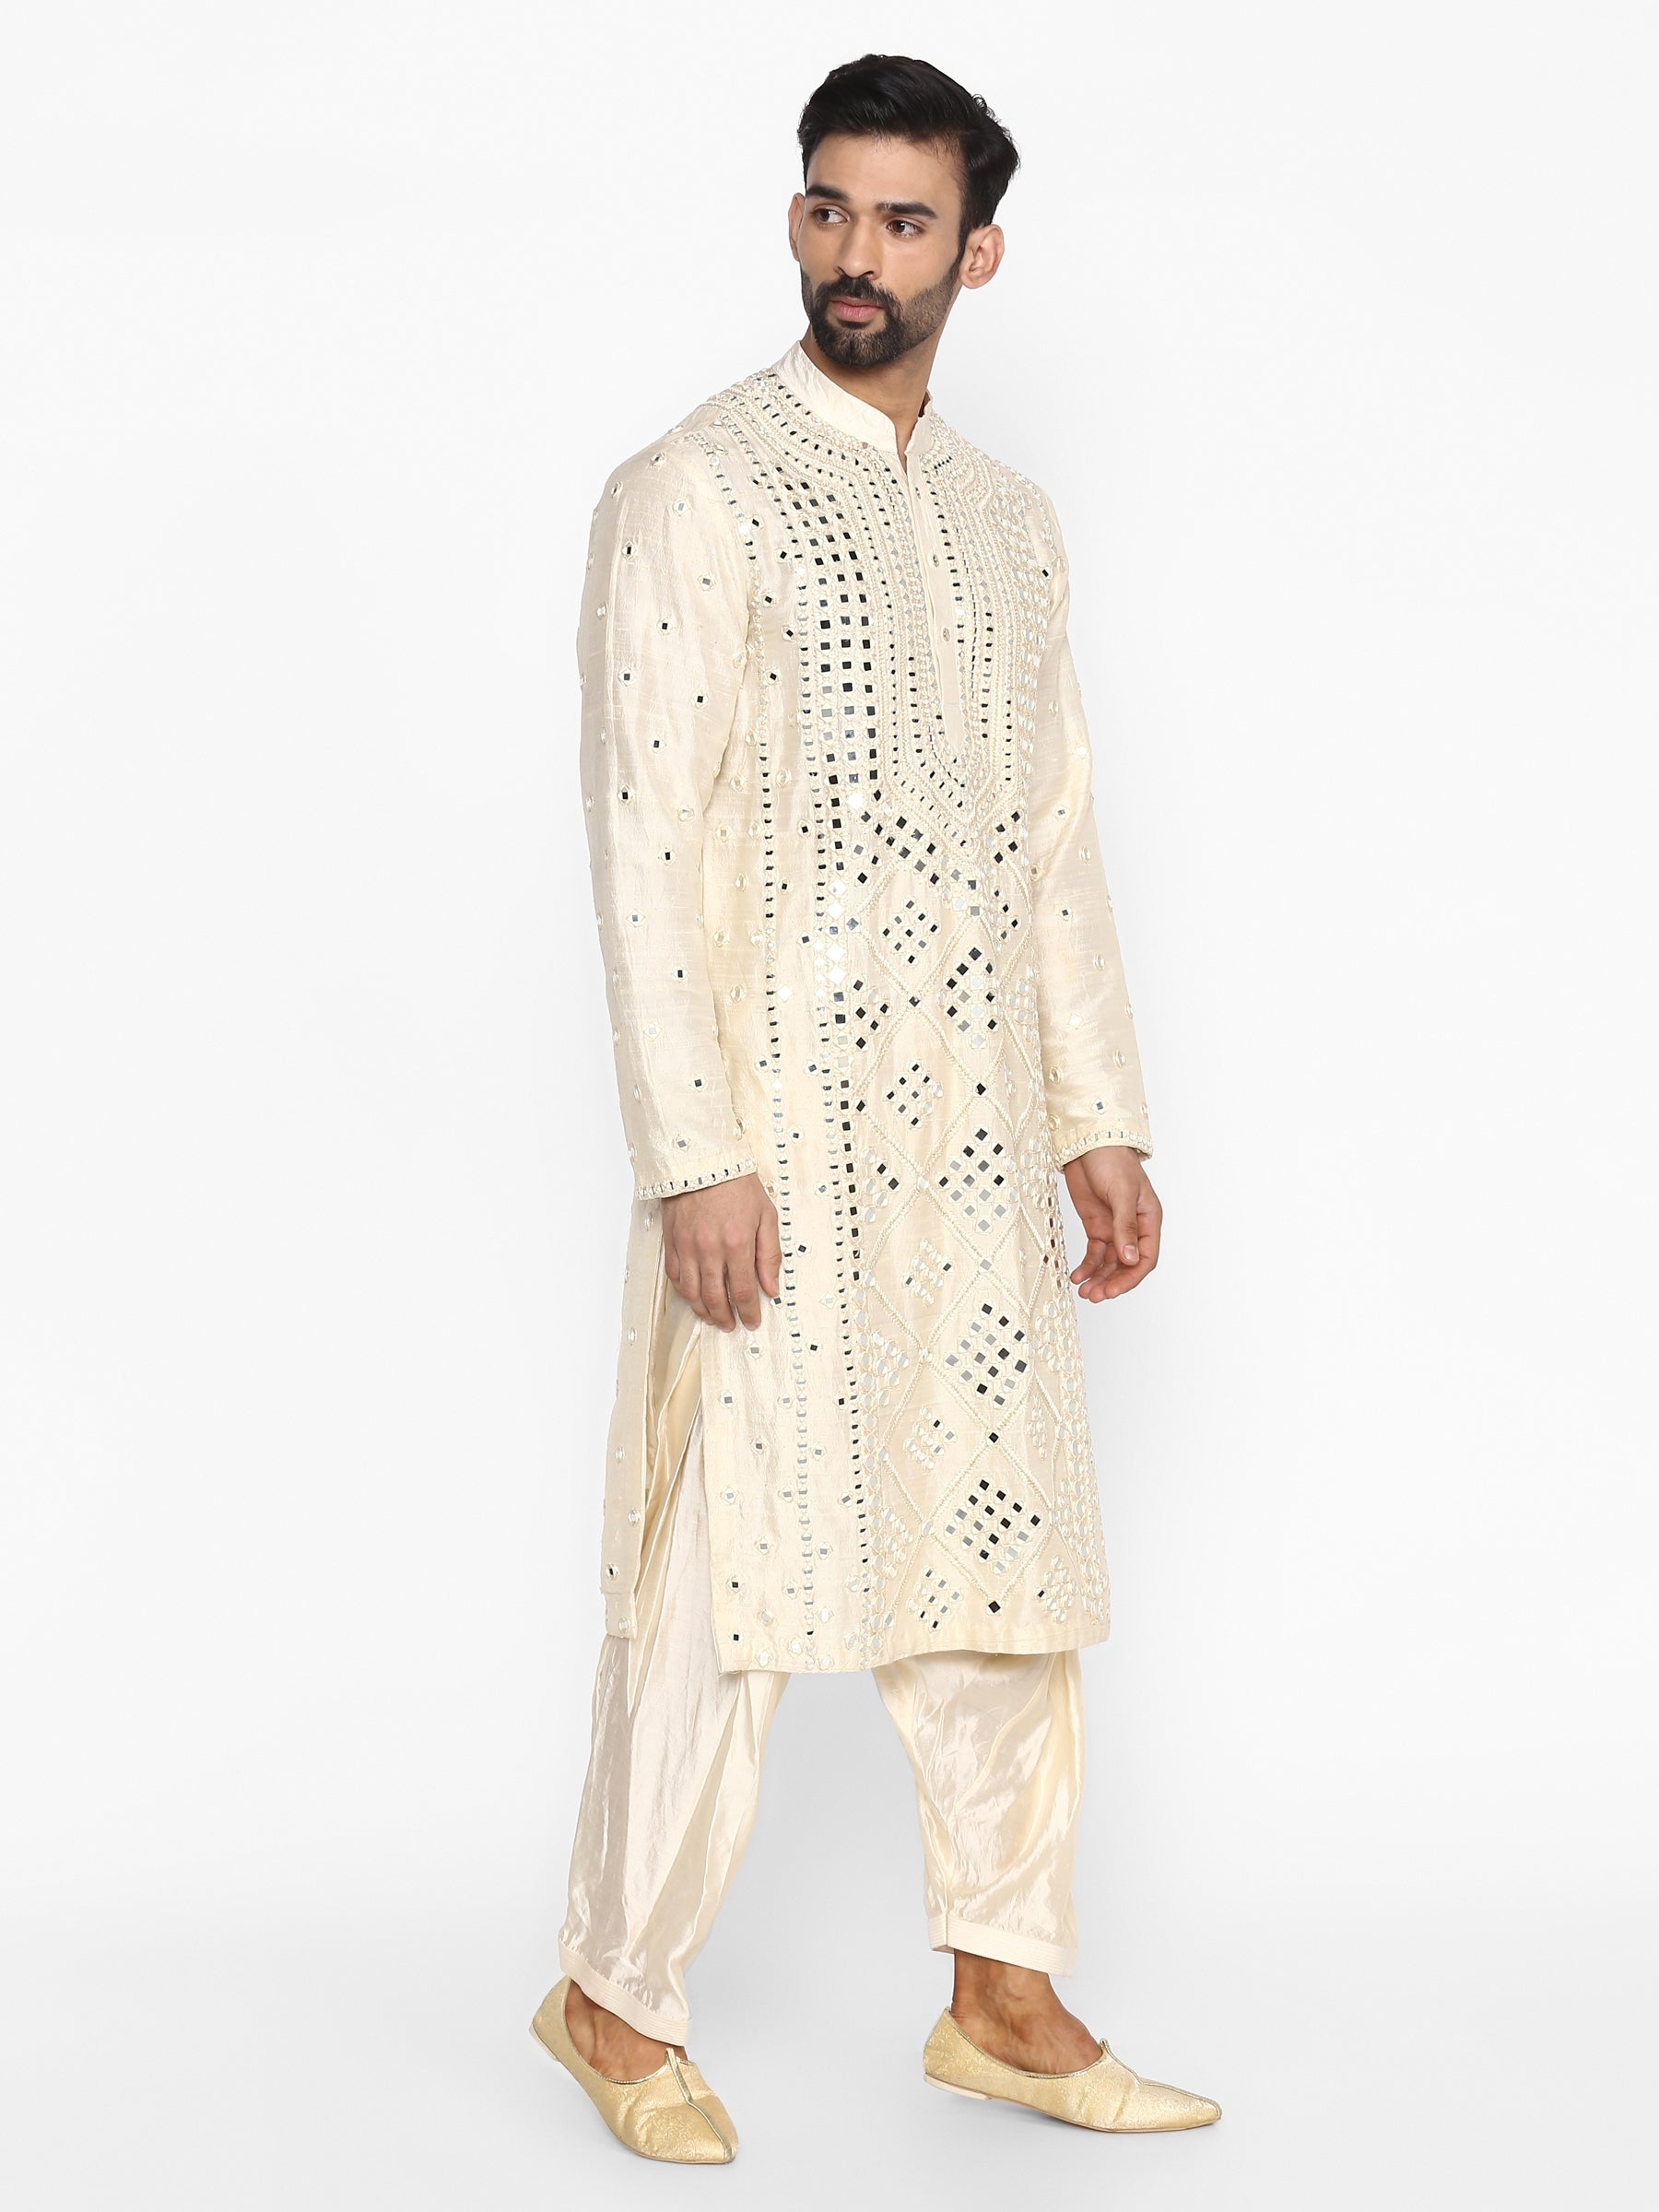 Abhinav Mishra Beige-Cream Kurta - The Grand Trunk